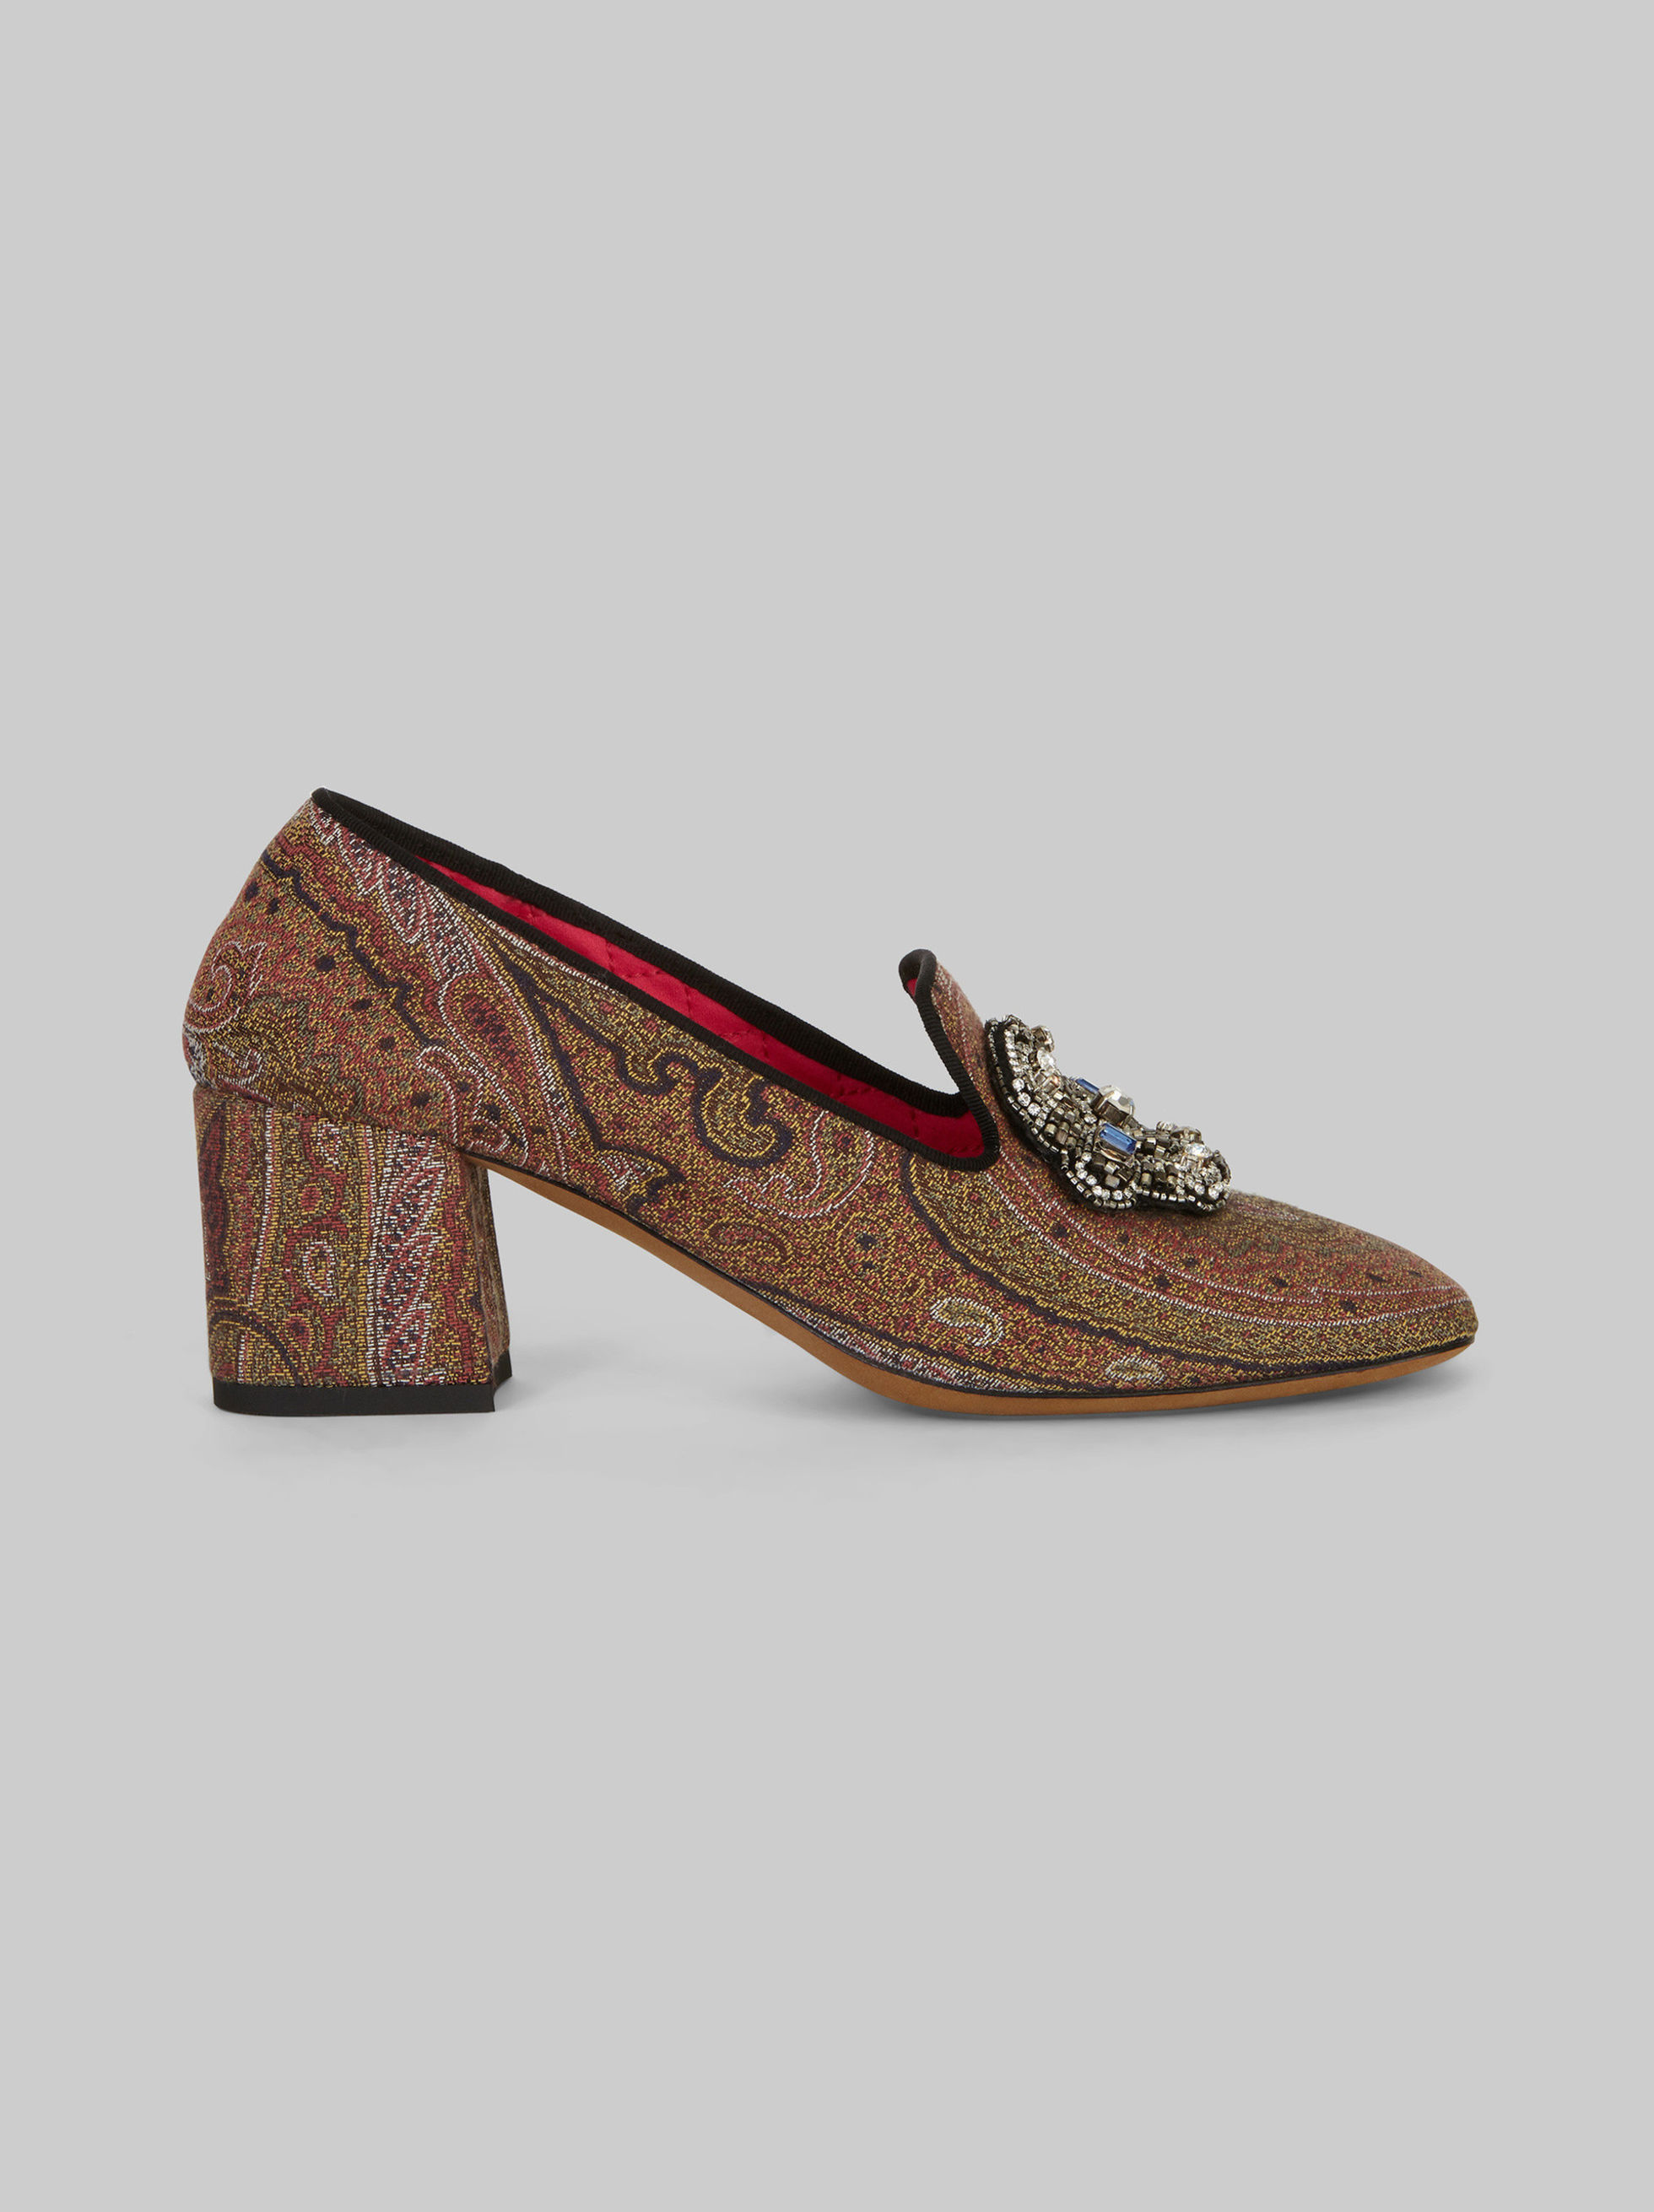 JACQUARD PUMPS WITH EMBROIDERY